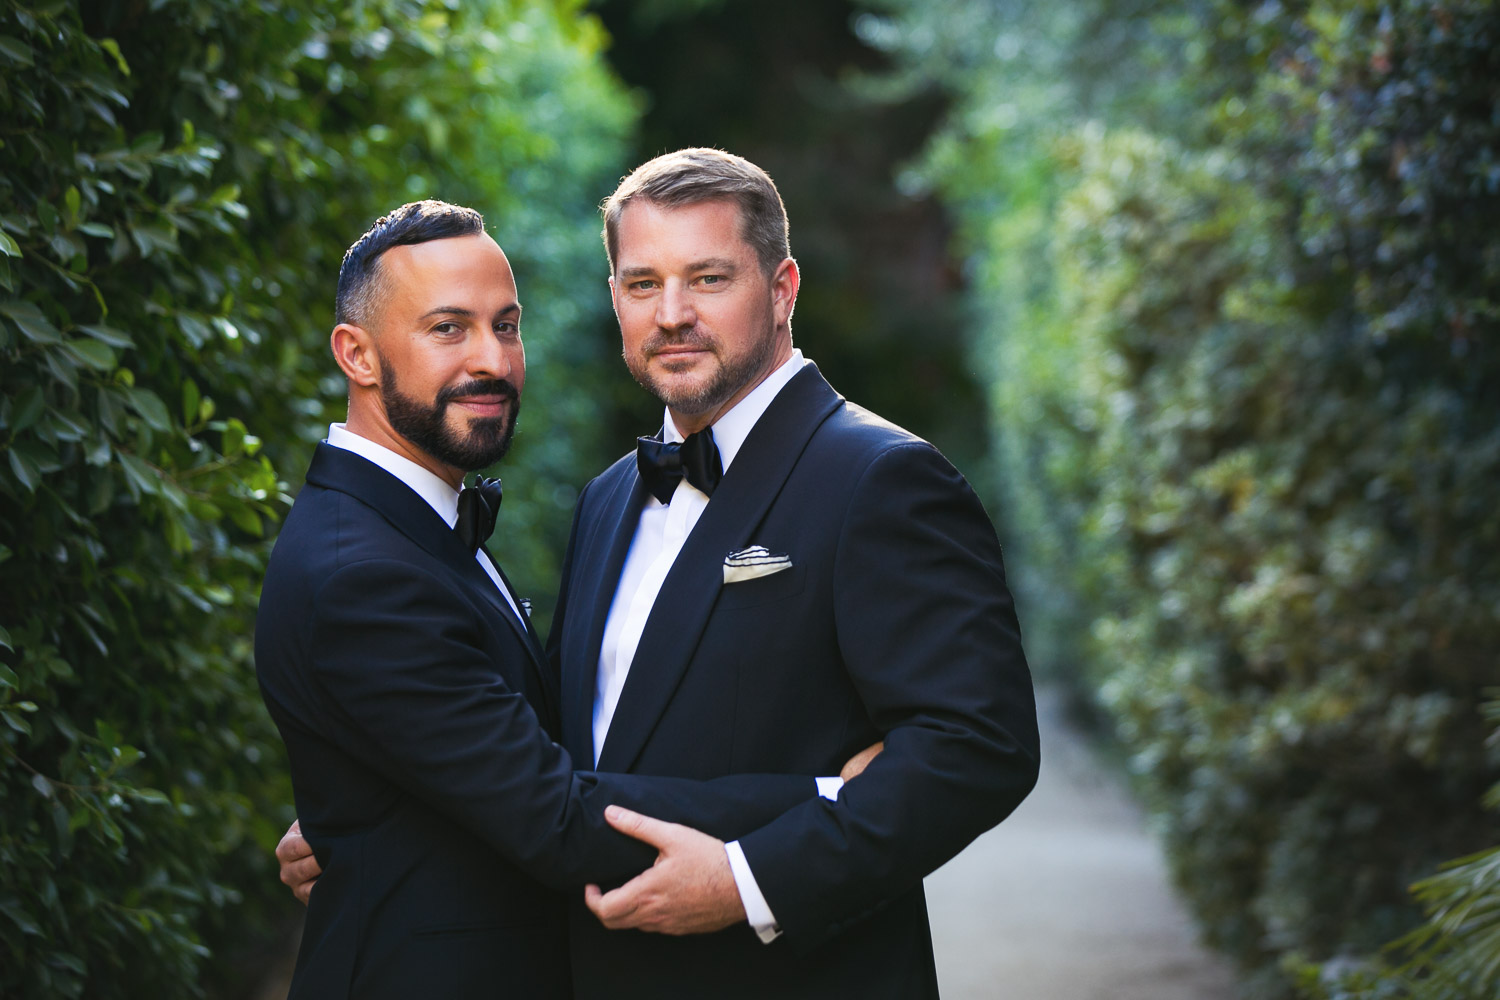 Groom embrace wearing tuxedos and bowtie - photo by Callaway Gable - Los Angeles